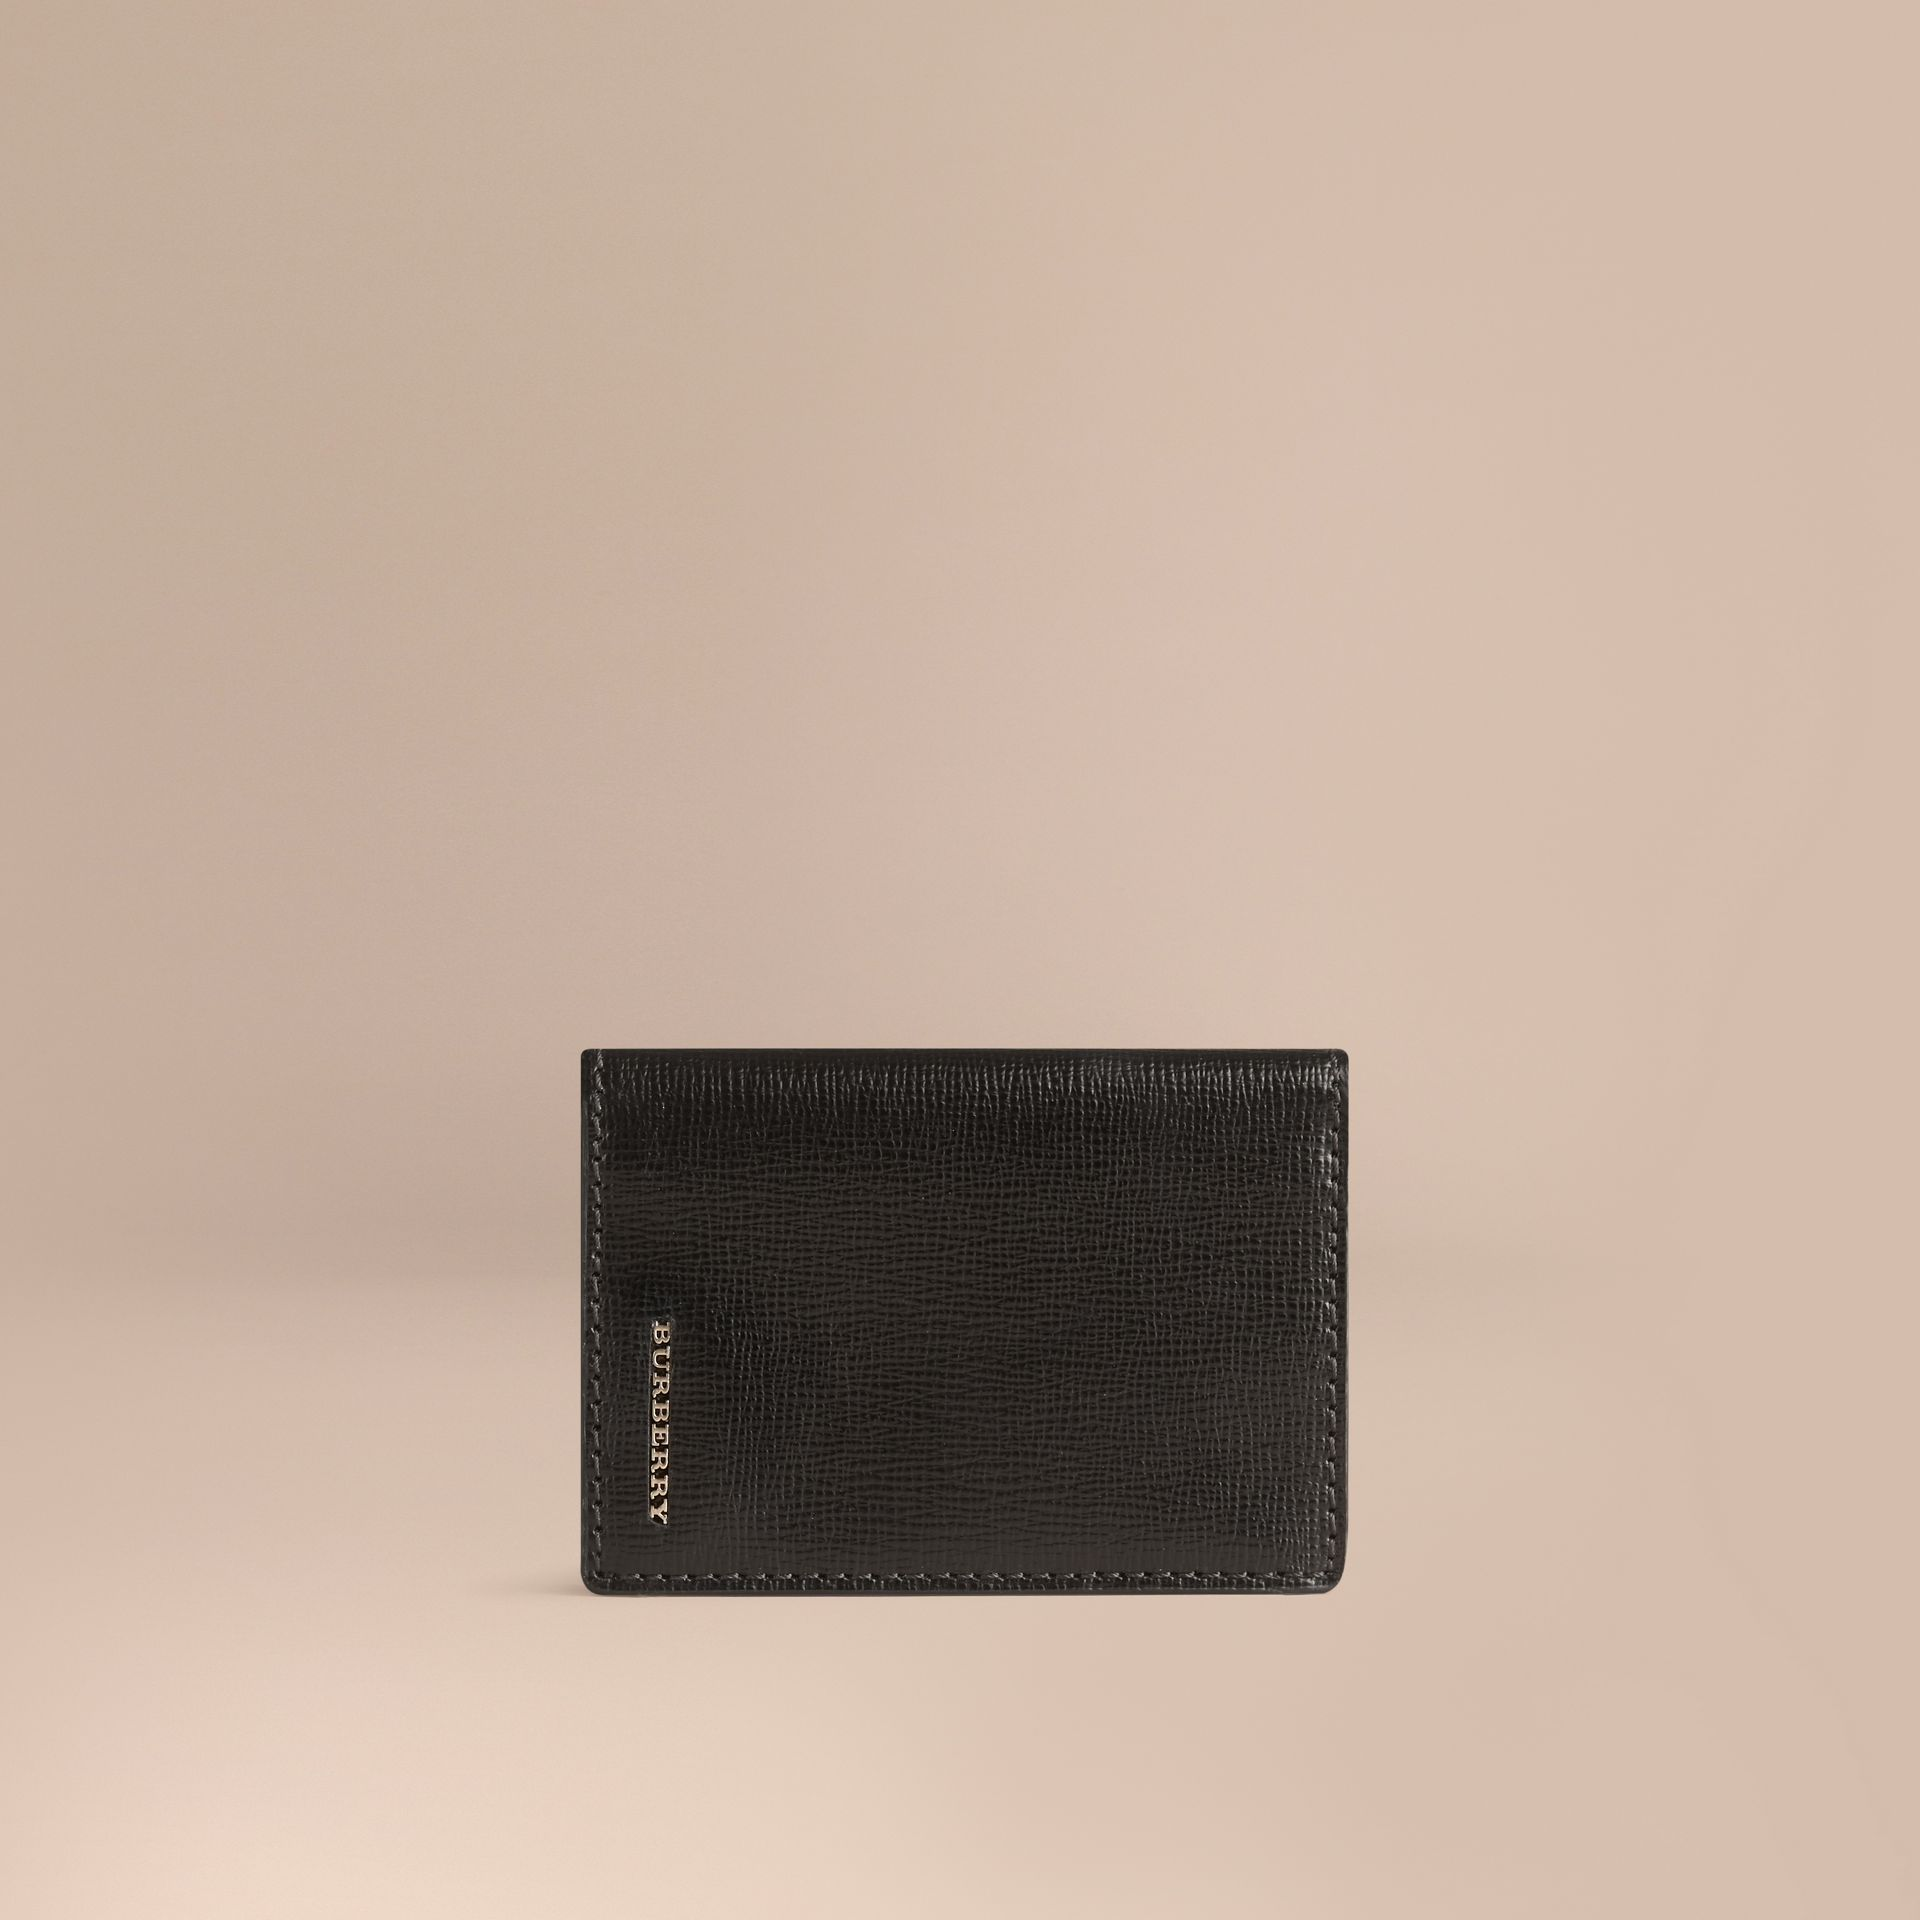 London Leather Folding Card Case in Black | Burberry - gallery image 1